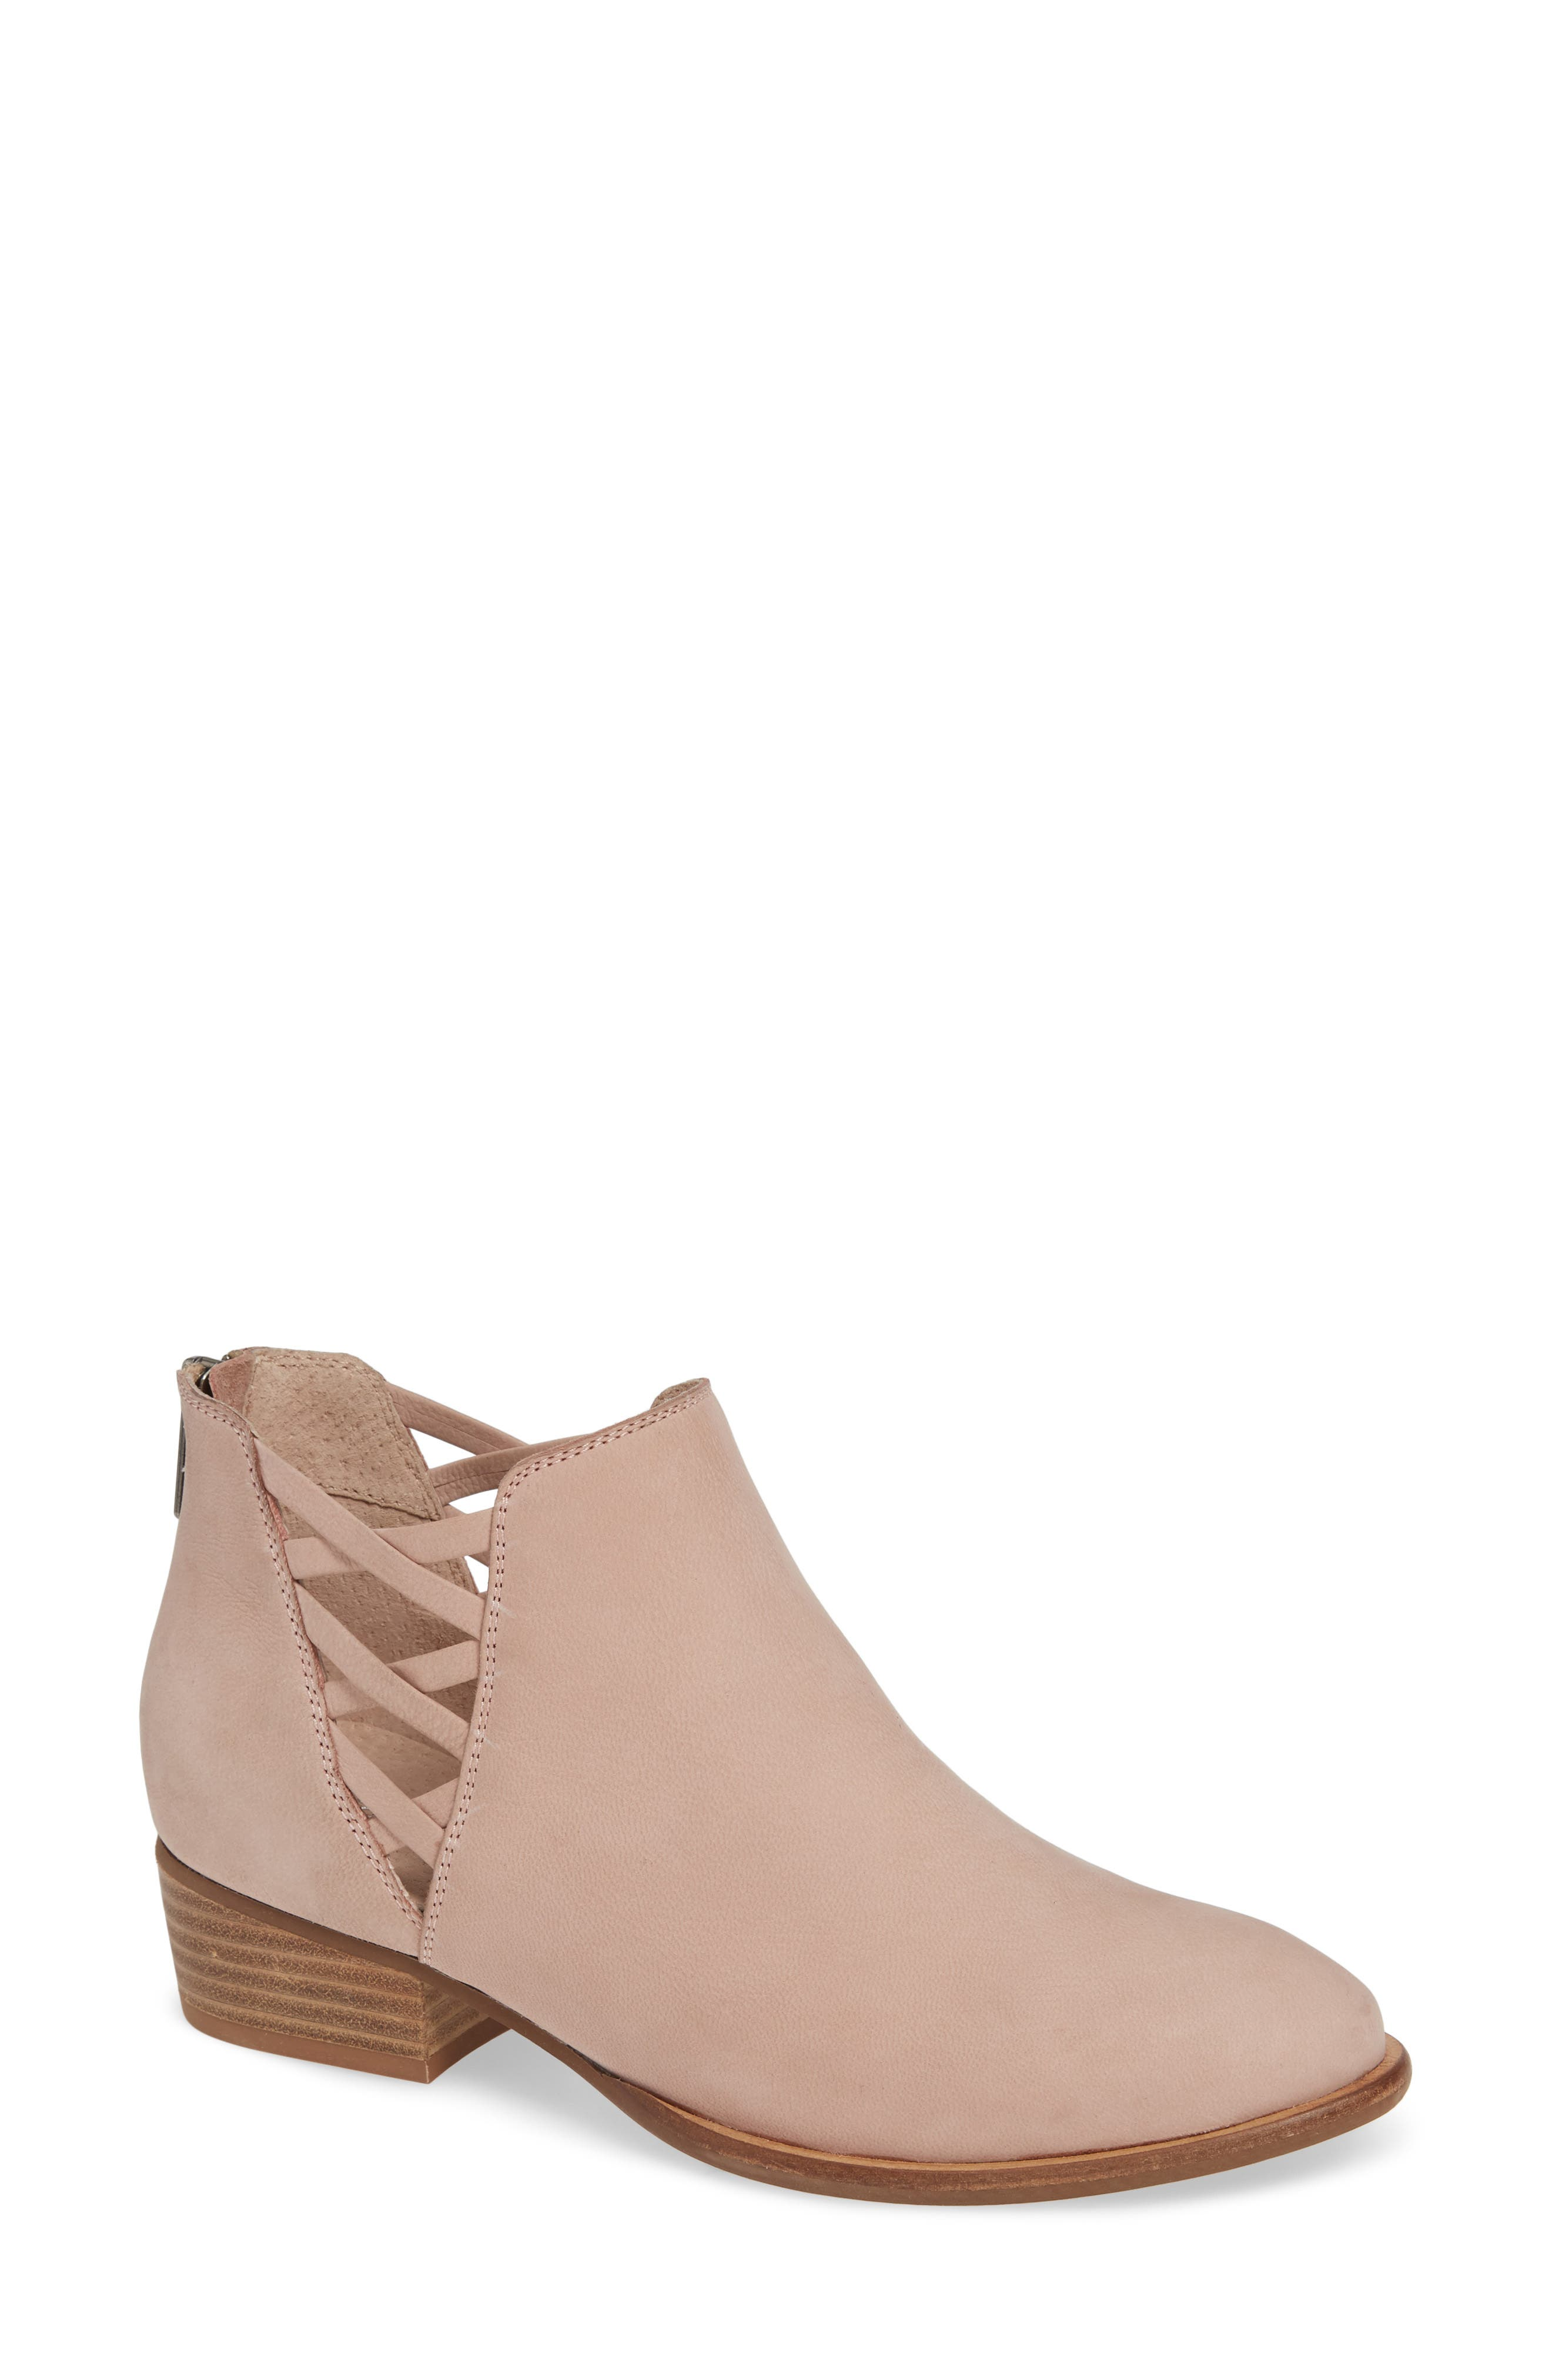 Seychelles Remembrance Bootie, Pink